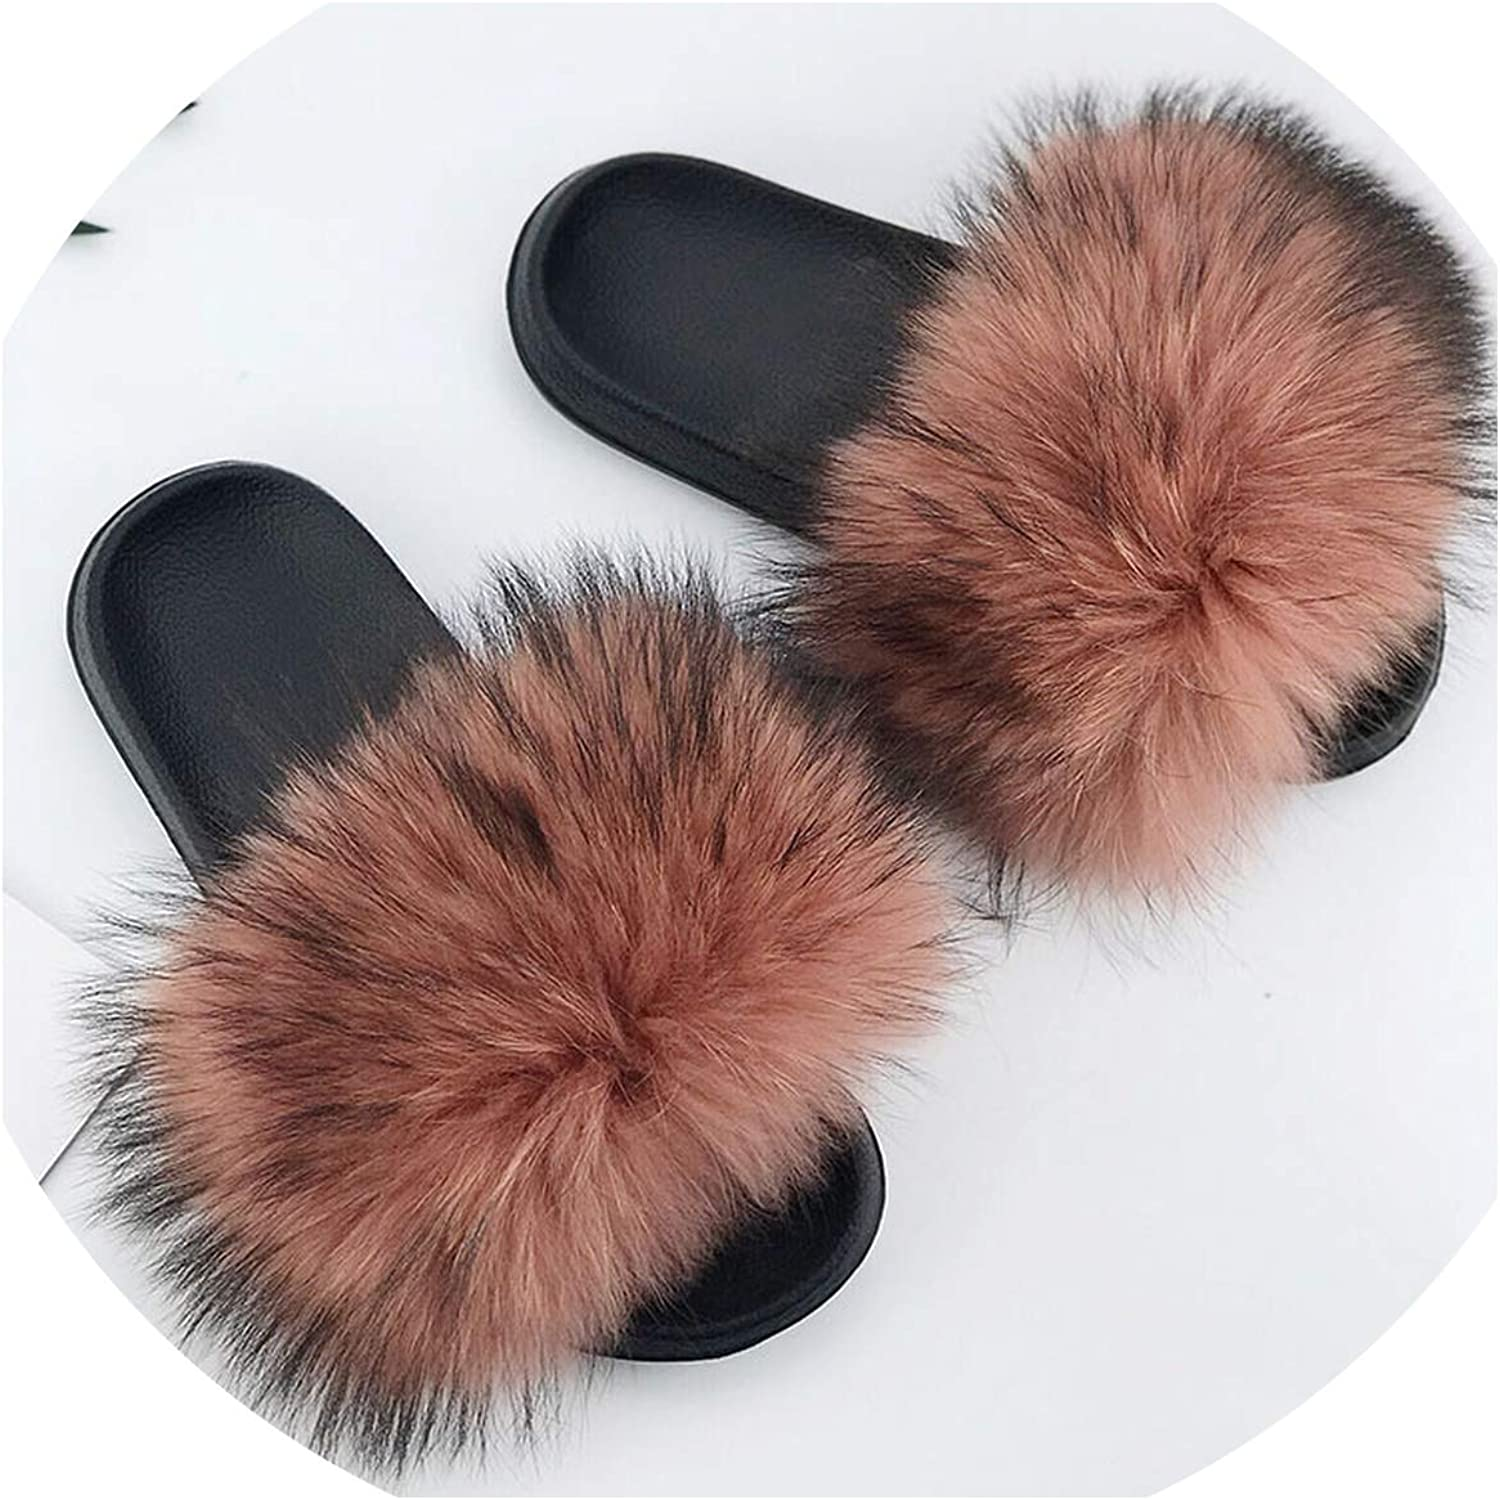 Just XiaoZhouZhou 28 colors Real Fur Slippers Women Fox Fluffy Sliders Comfort with Feathers Furry Summer Flats Sweet Ladies shoes Plus Size 36-45,22,7.5